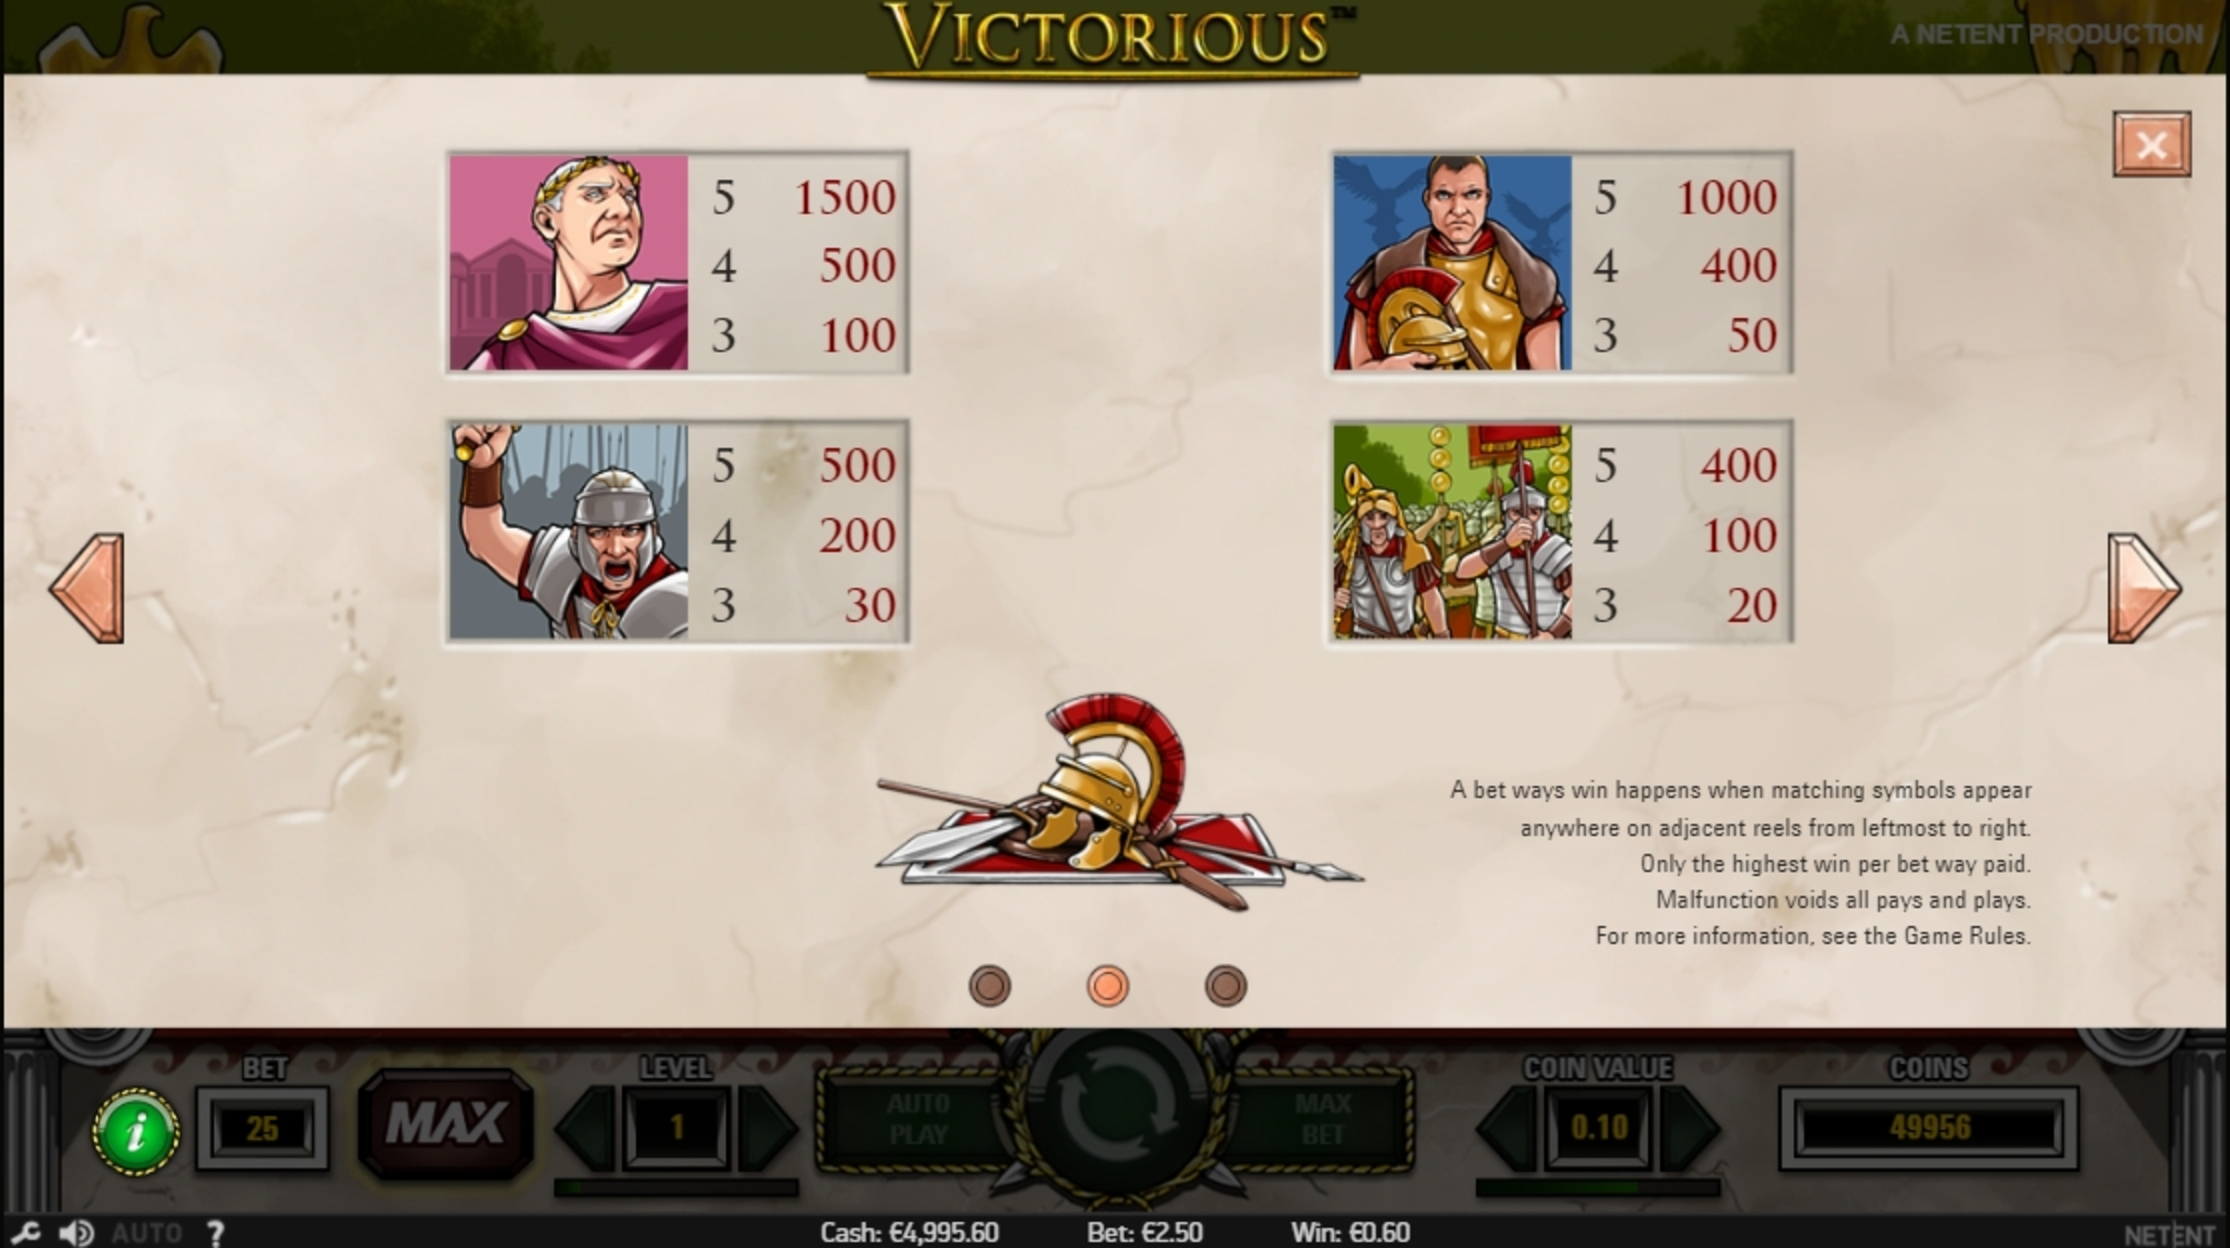 Info of Victorious Slot Game by NetEnt